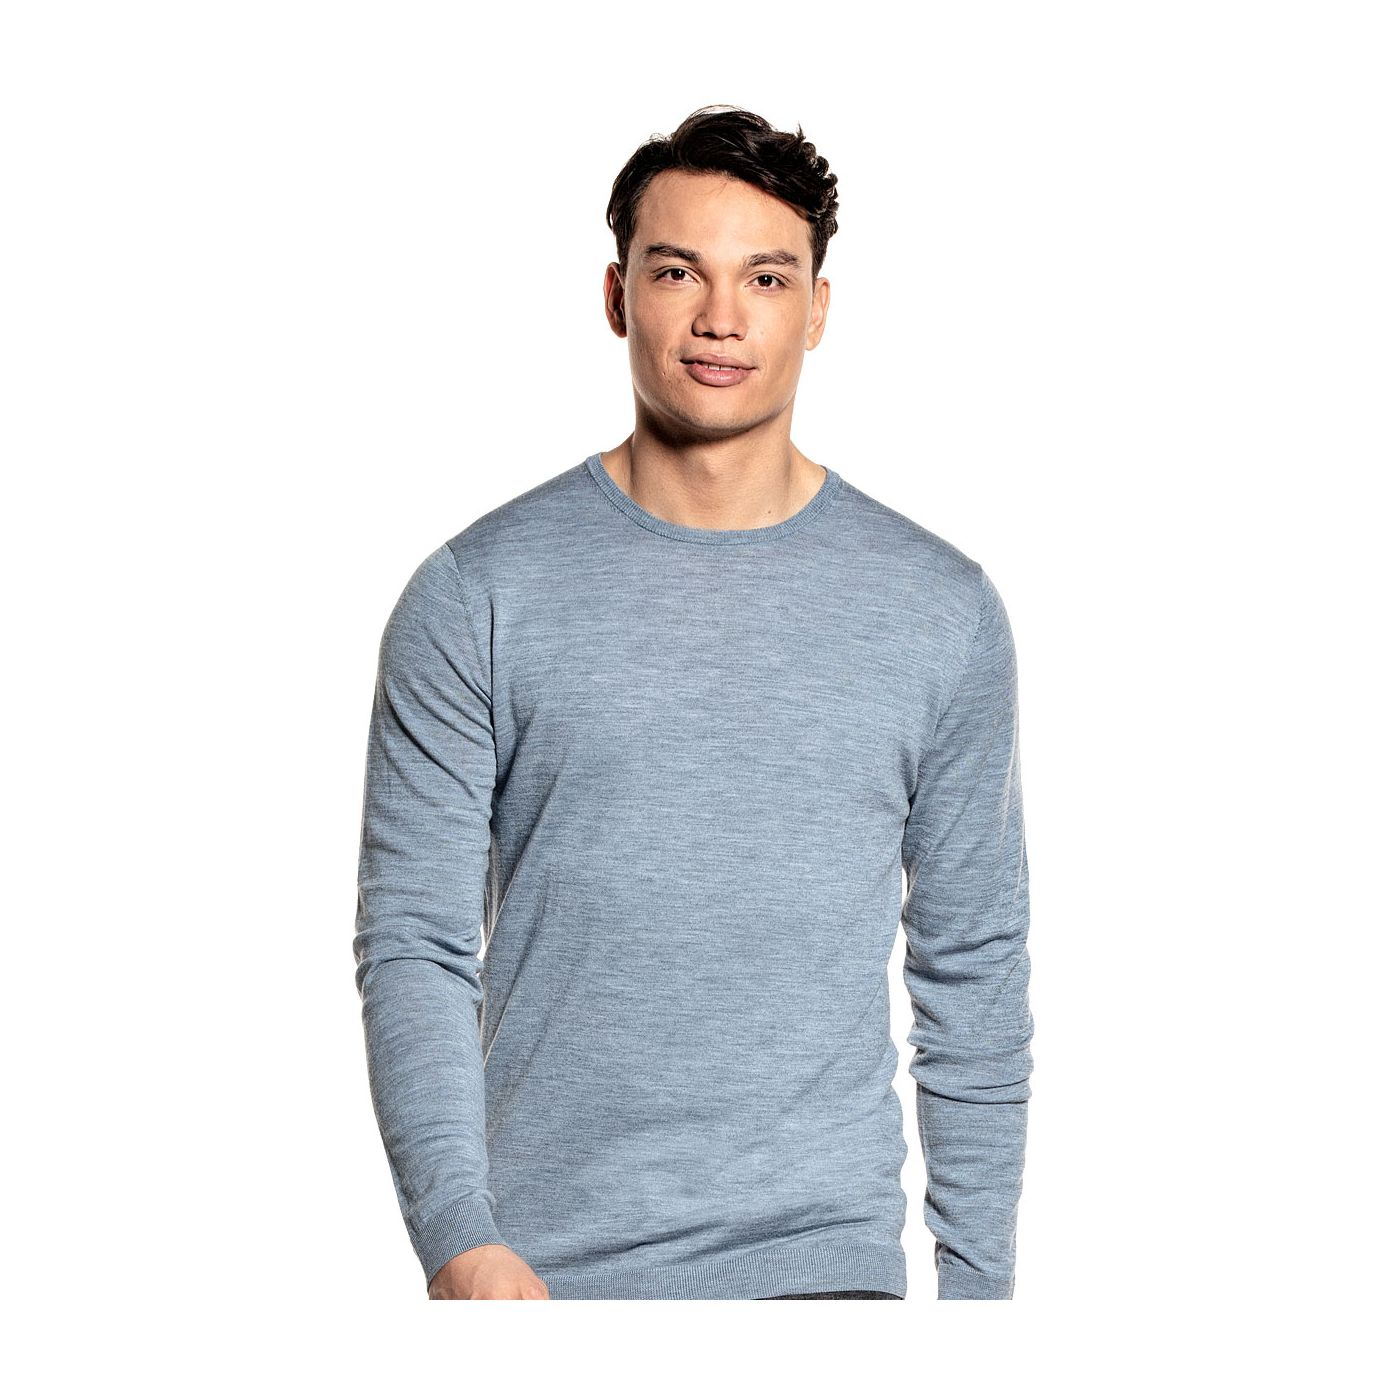 Extra long crew neck sweater for men made of Merino wool in Blue grey